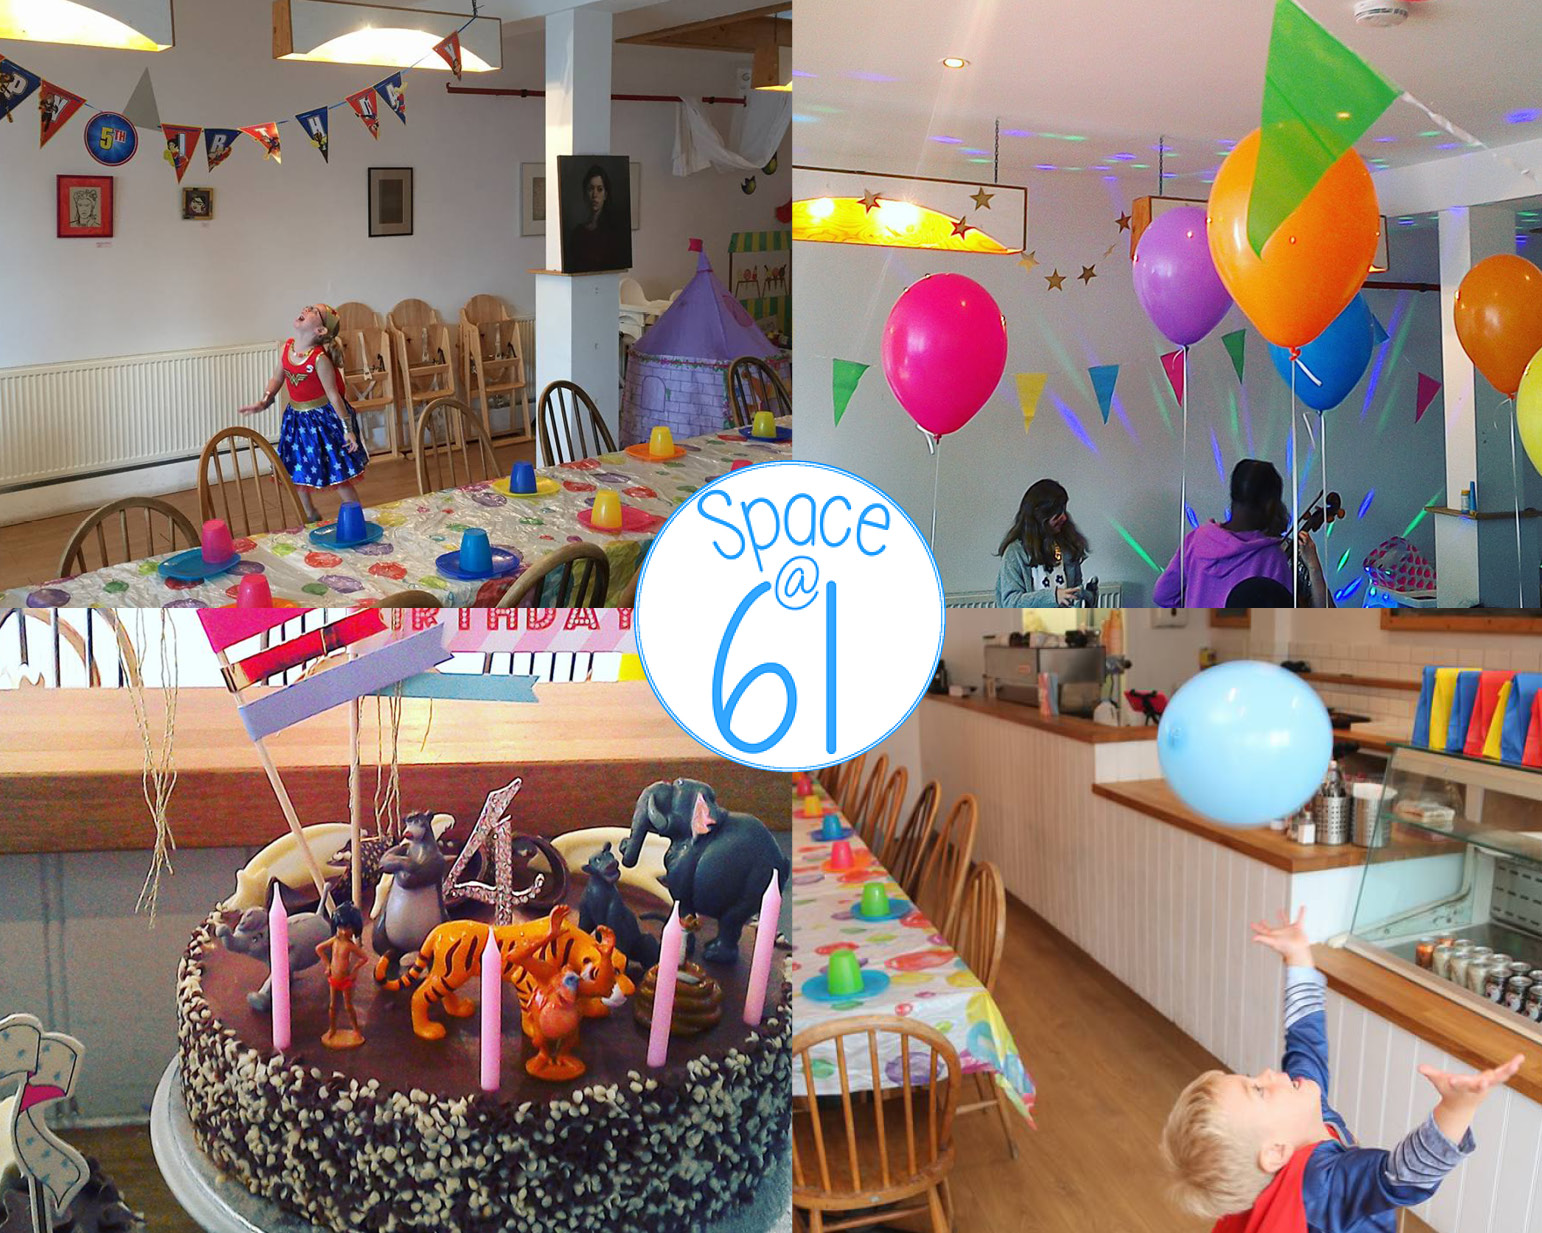 FF birthdays at Space 61 - Space at 61 has a great offer for all you FF readers; if you book quoting FF Birthdays, you will recieve 10% off your party booking. Contact: Shona Chambers Email: spaceat61@gmail.comCall: 07466 443 68161 Cheltenham Road,Nunhead, SE15 3AF